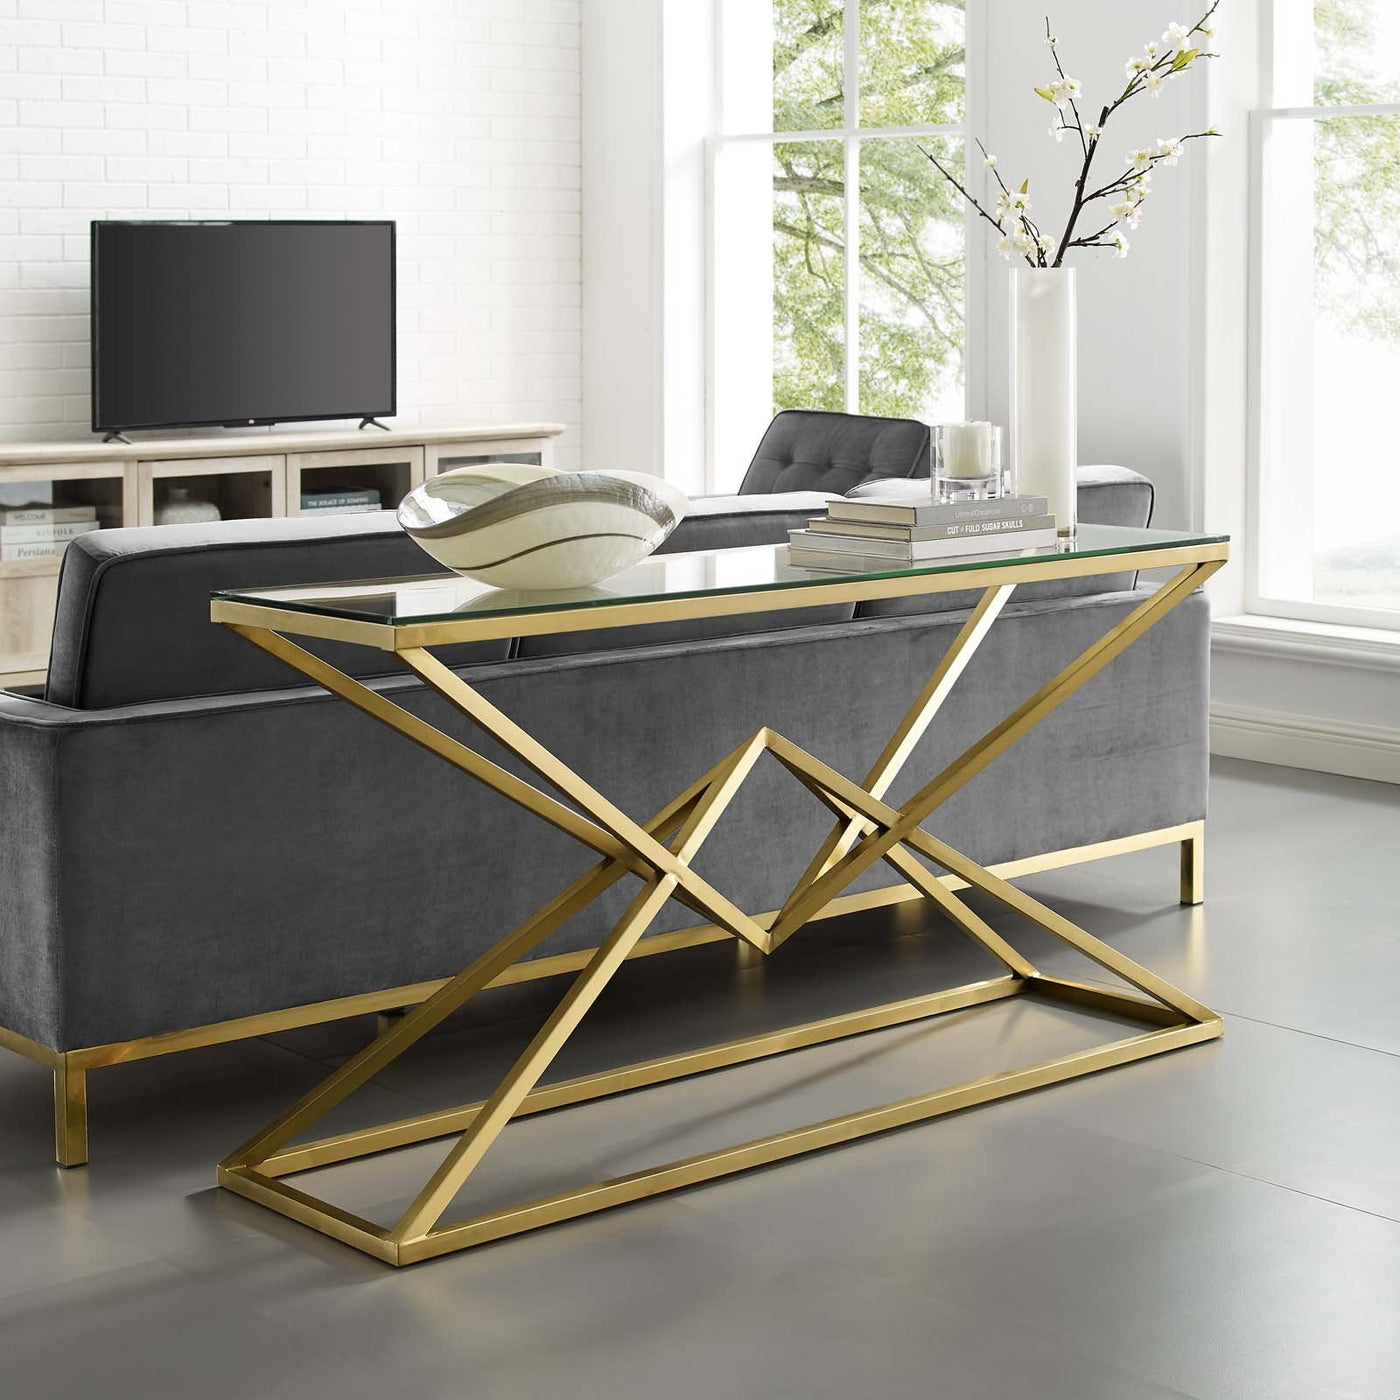 Consoles & Sofa Tables Collection